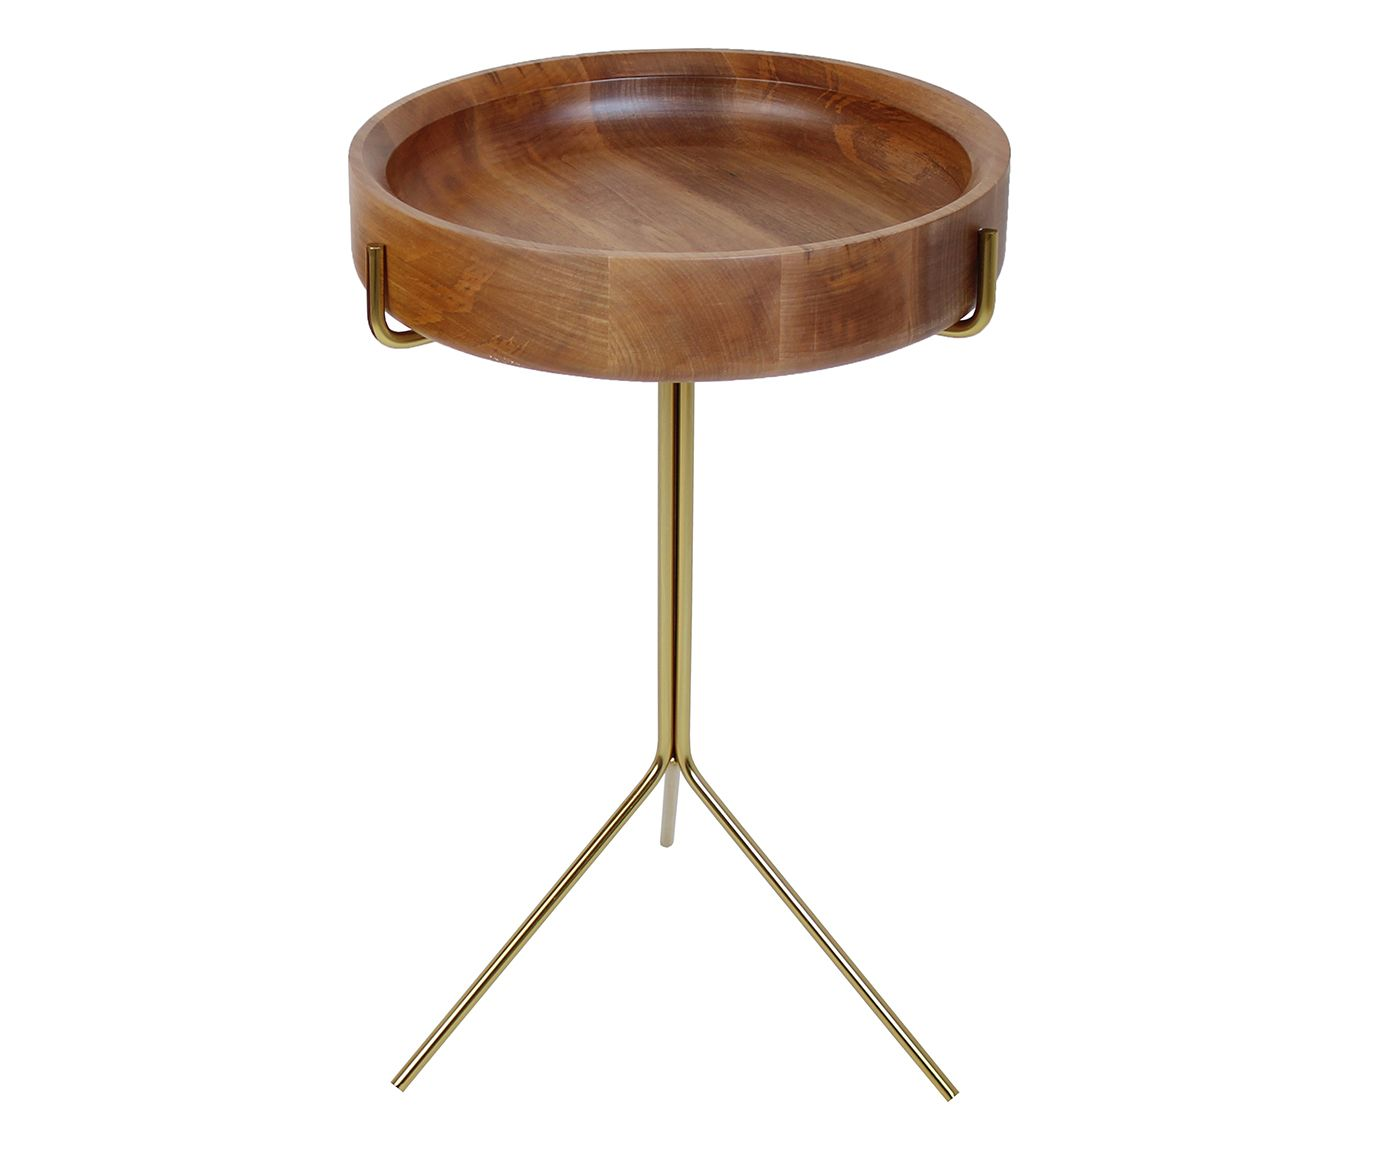 Mesa Lateral Live Marrom Claro - 56X38cm | Westwing.com.br